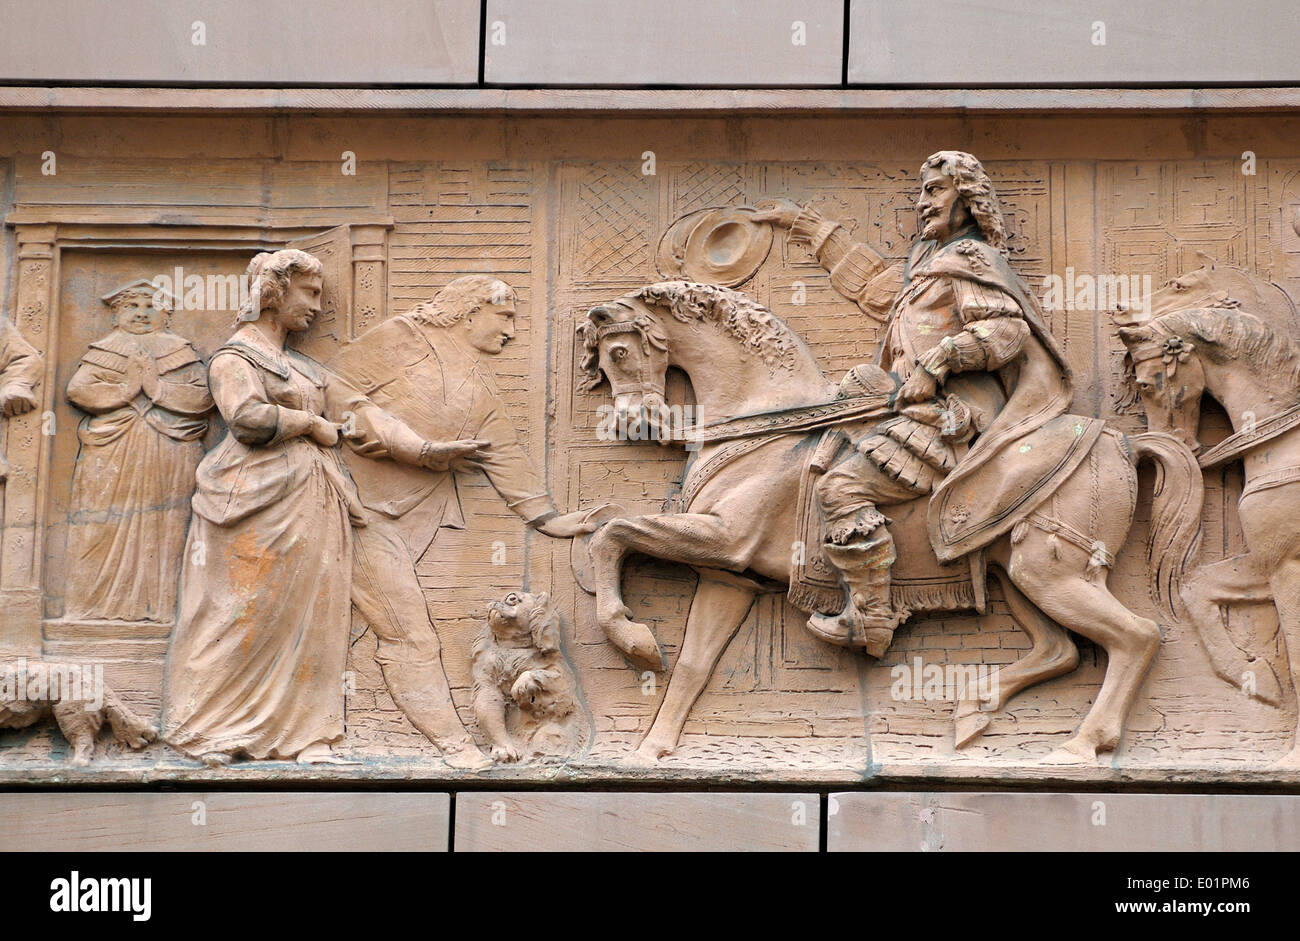 London, England, UK. No1 Poultry (James Stirling, 1994) historical frieze on the facade: royal procession - Charles II - Stock Image